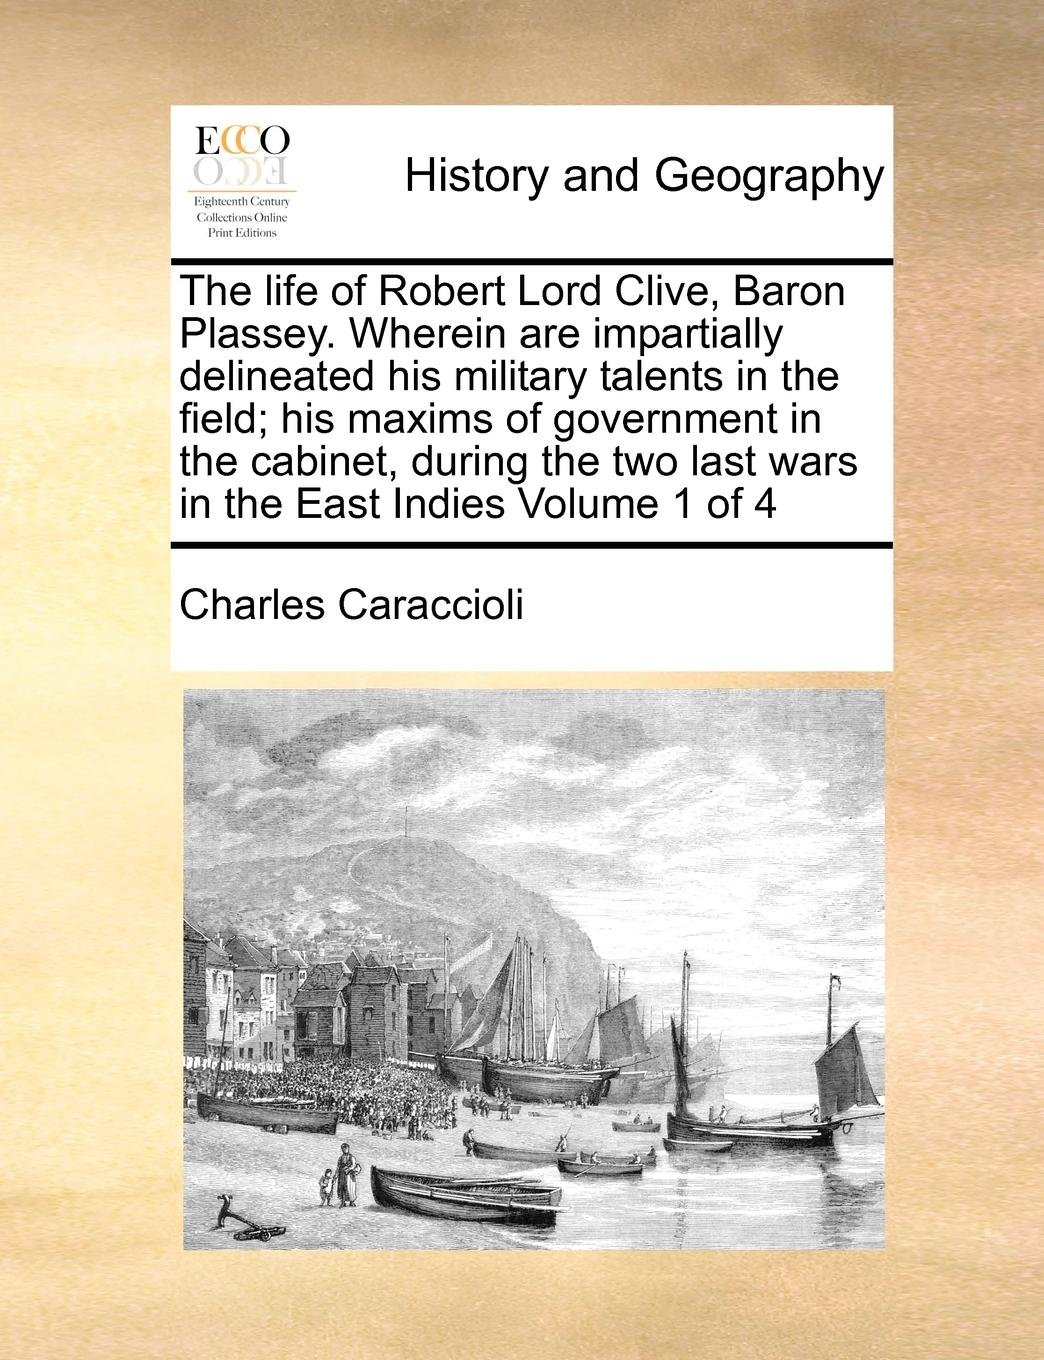 The life of Robert Lord Clive, Baron Plassey. Wherein are impartially delineated his military talents in the field; his maxims of government in the ... last wars in the East Indies  Volume 1 of 4 ebook